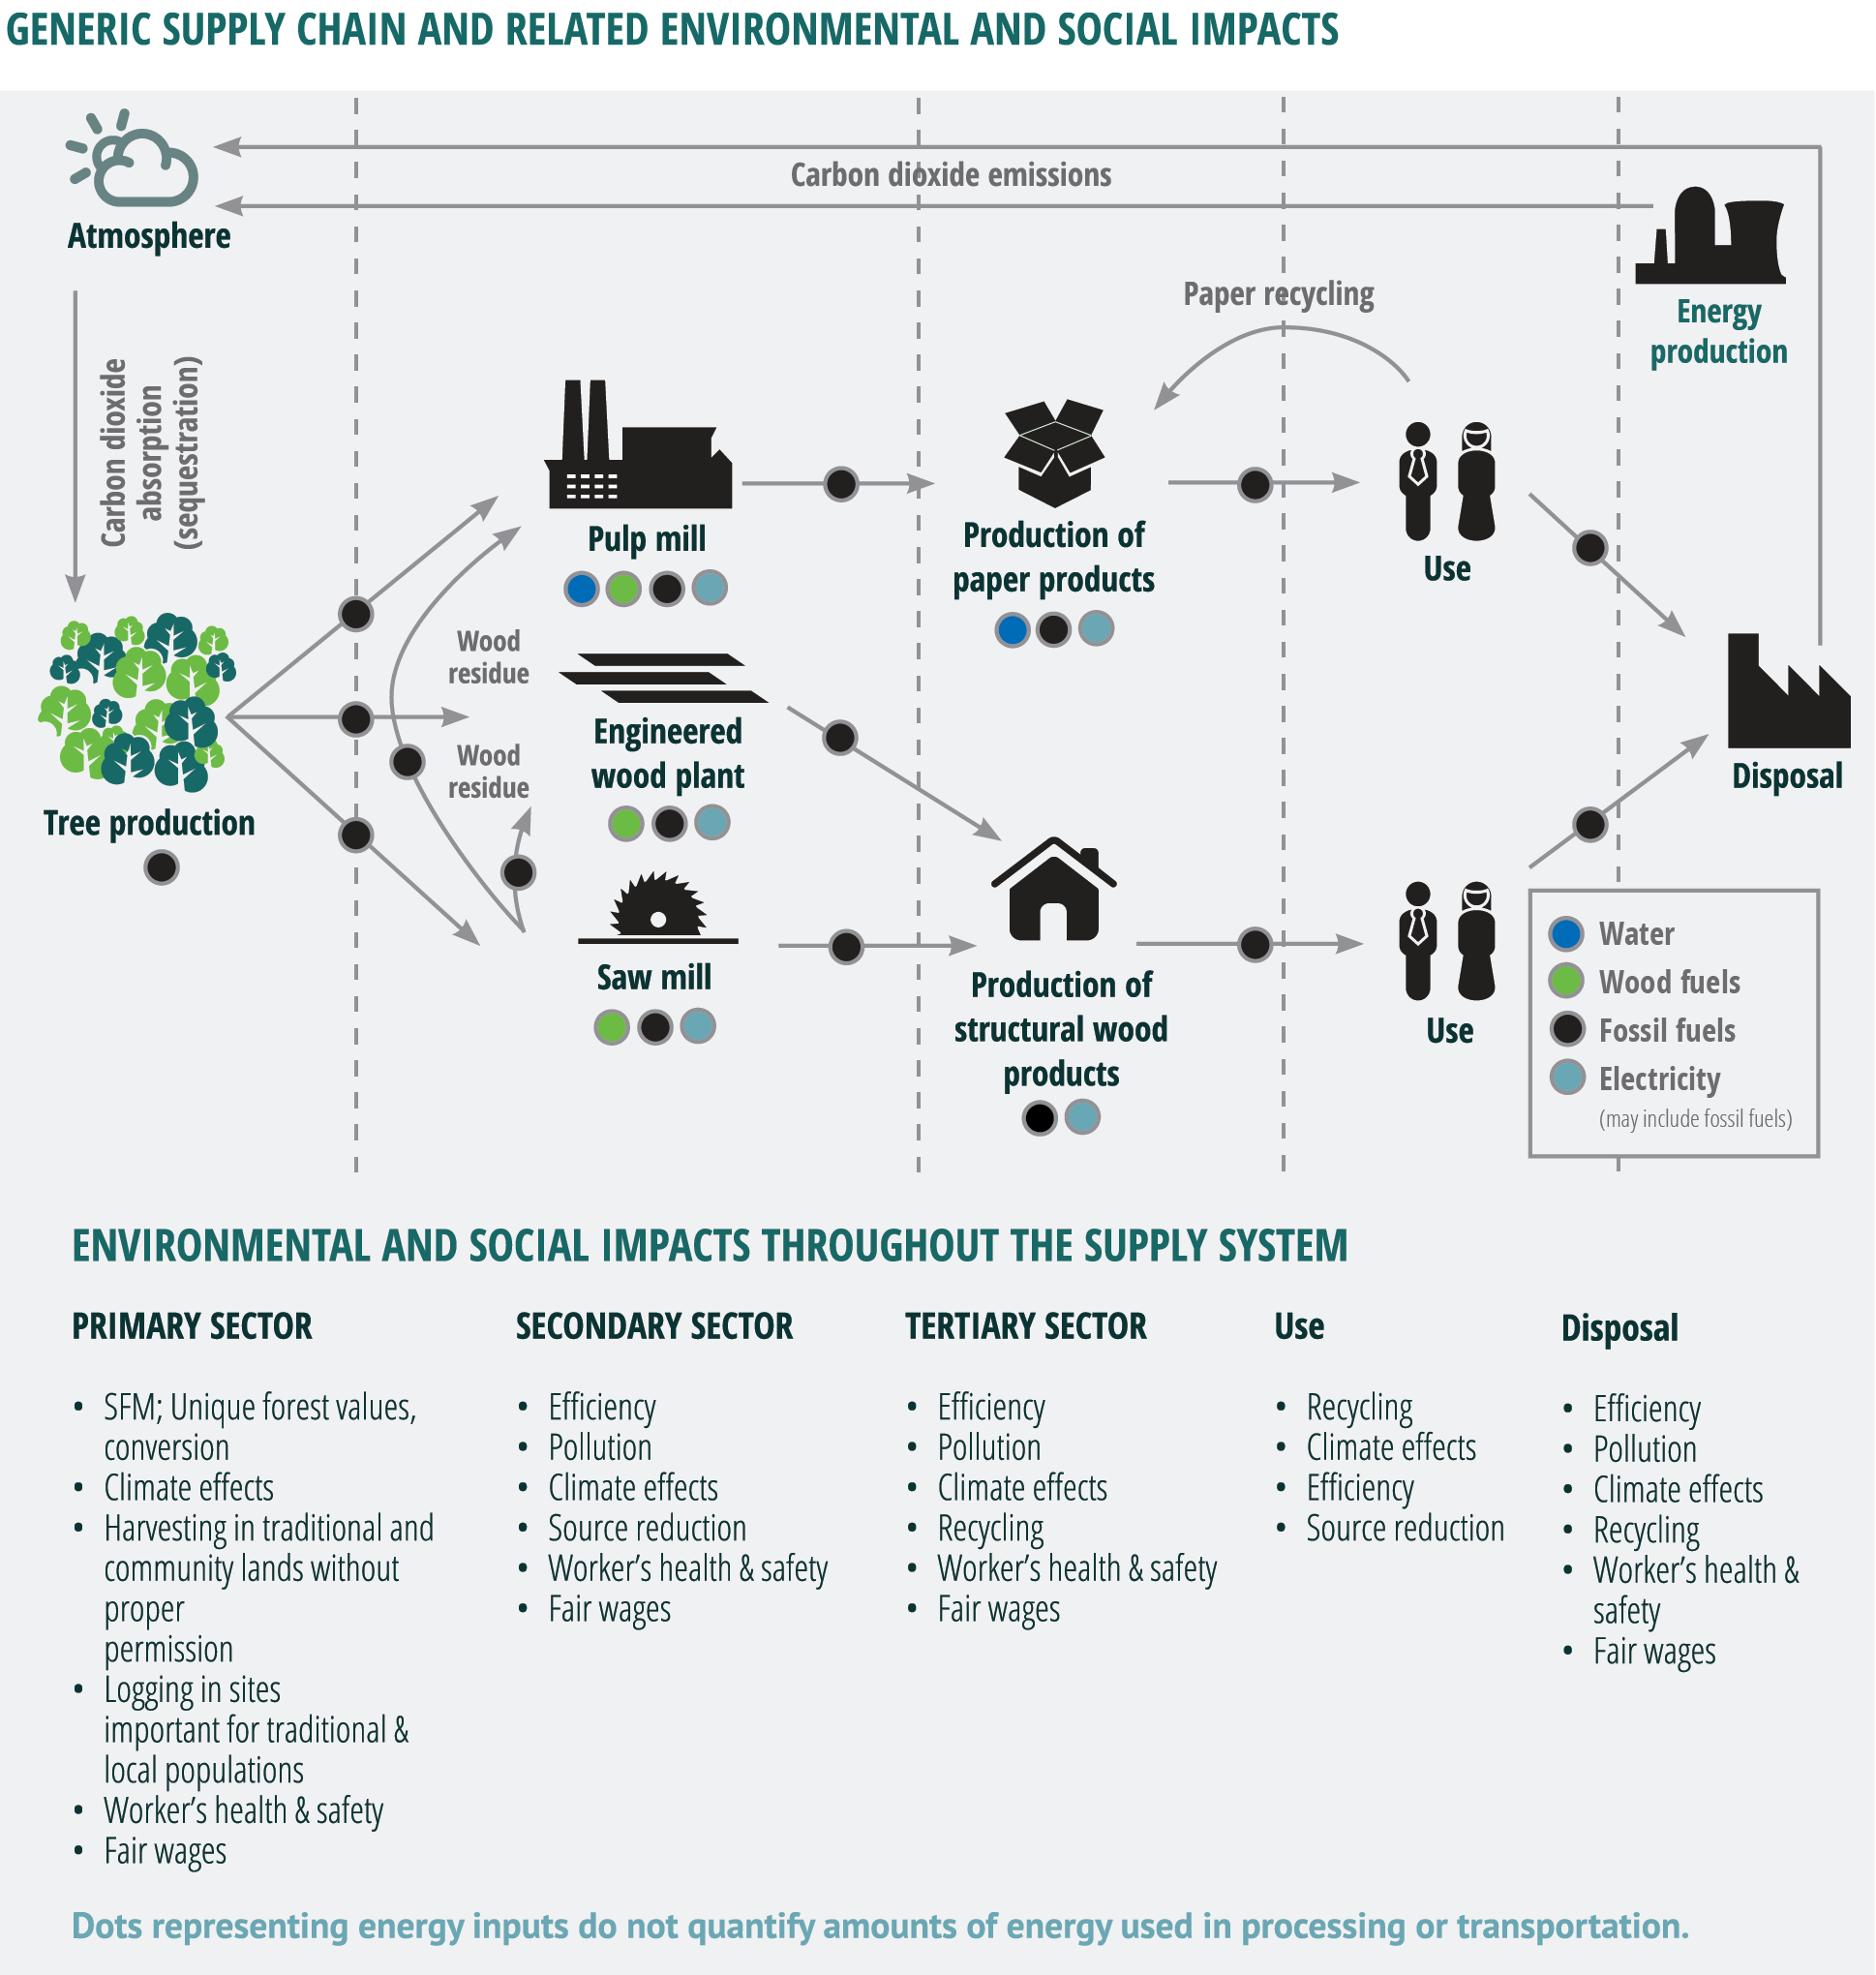 generic supply chain and related environmental and social impacts infographic